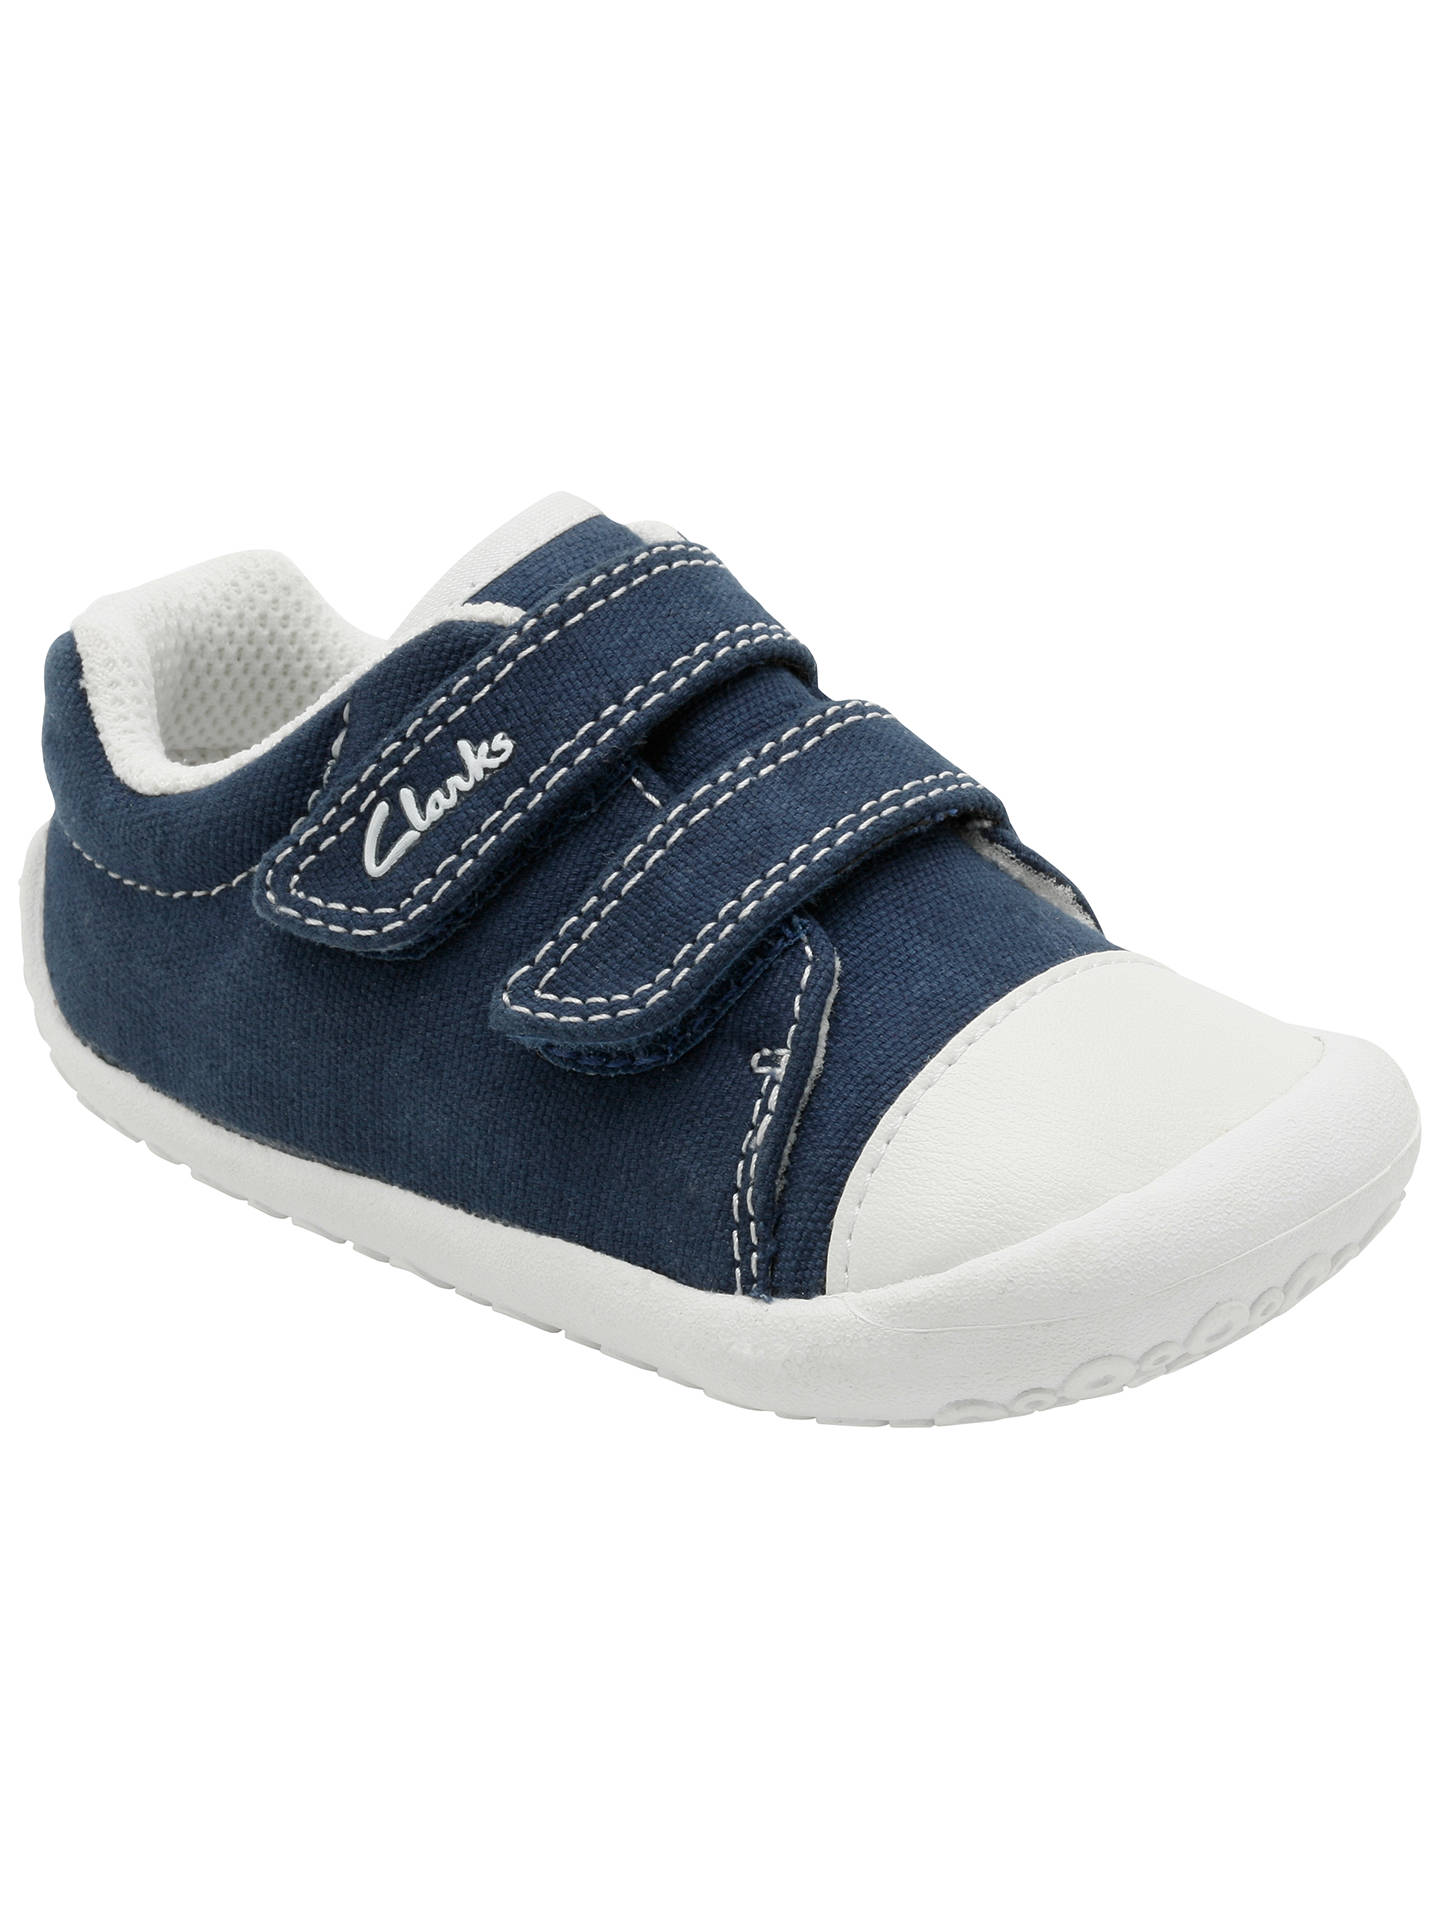 e7392f56a425d Buy Clarks Children's Little Canvas Rip-Tape Shoes, Navy, 2F Jnr Online at  ...